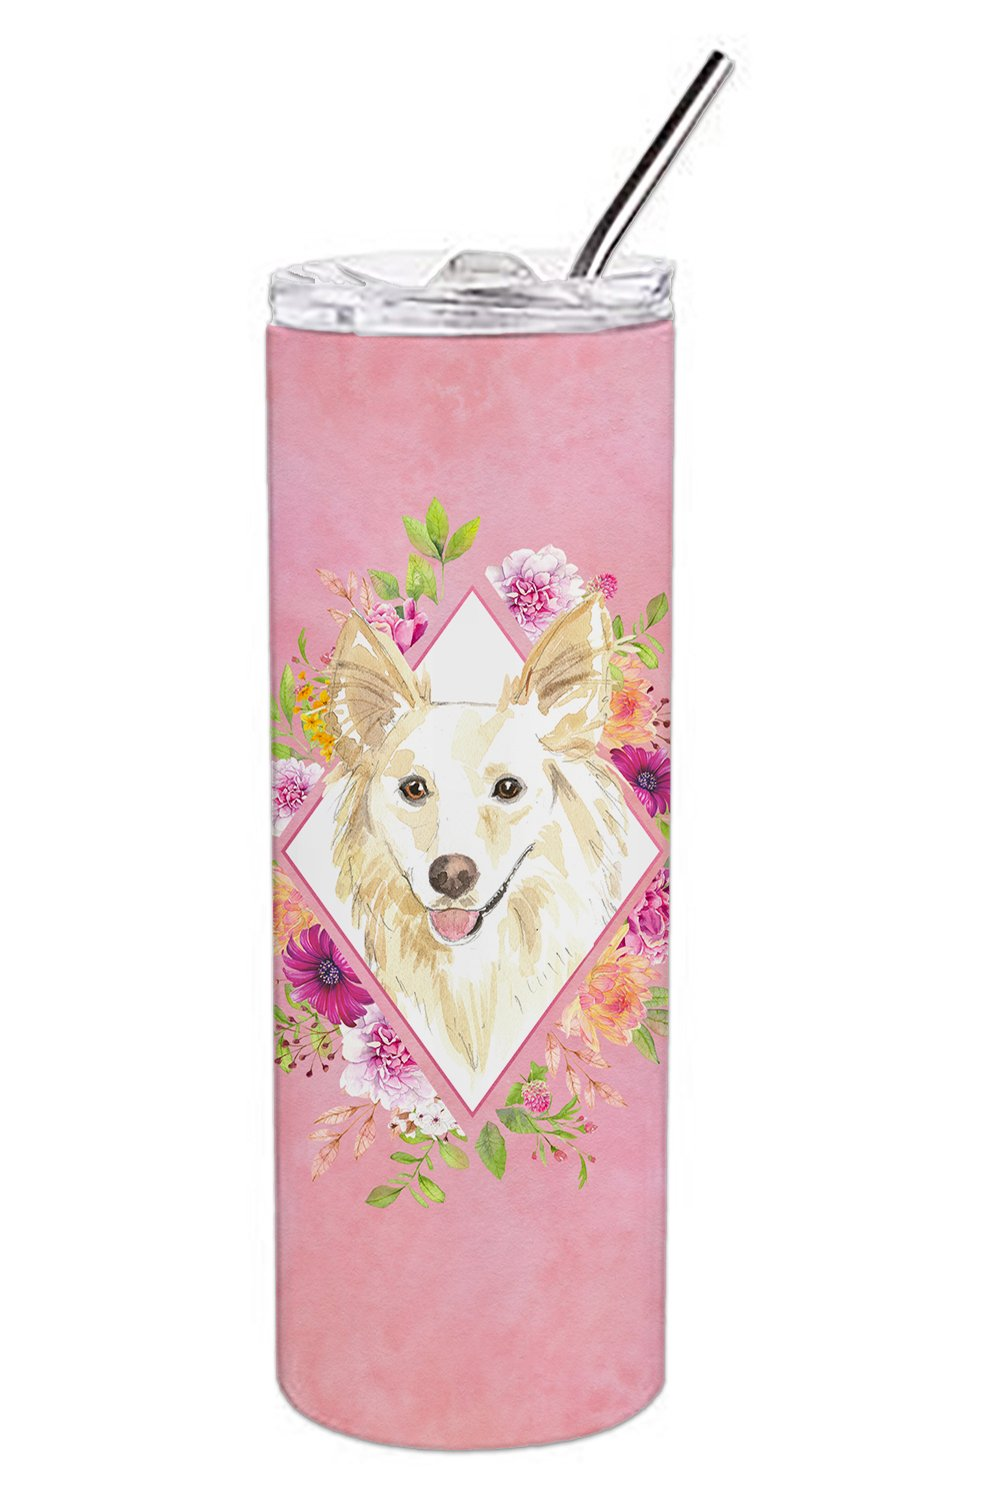 White Collie Pink Flowers Double Walled Stainless Steel 20 oz Skinny Tumbler CK4201TBL20 by Caroline's Treasures